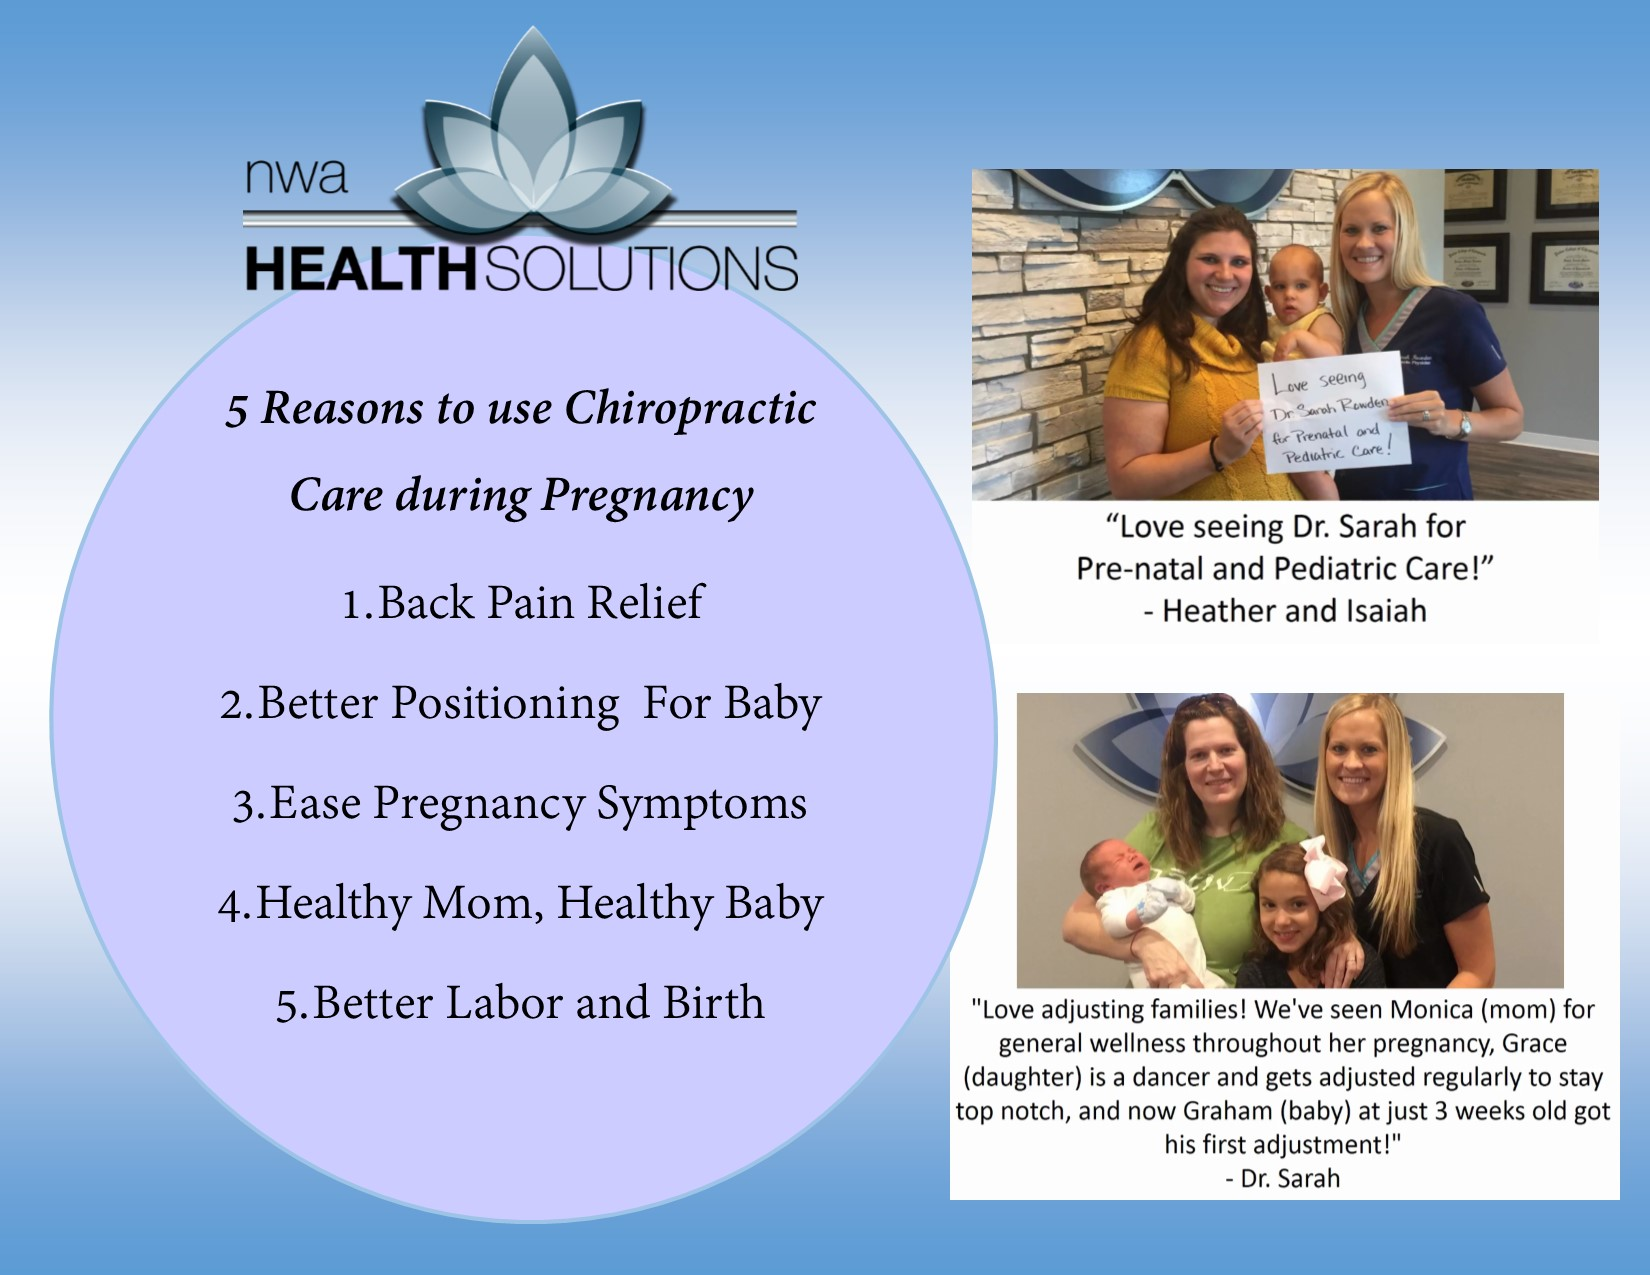 5 Reasons to Use Chiropractic Care During Pregnancy